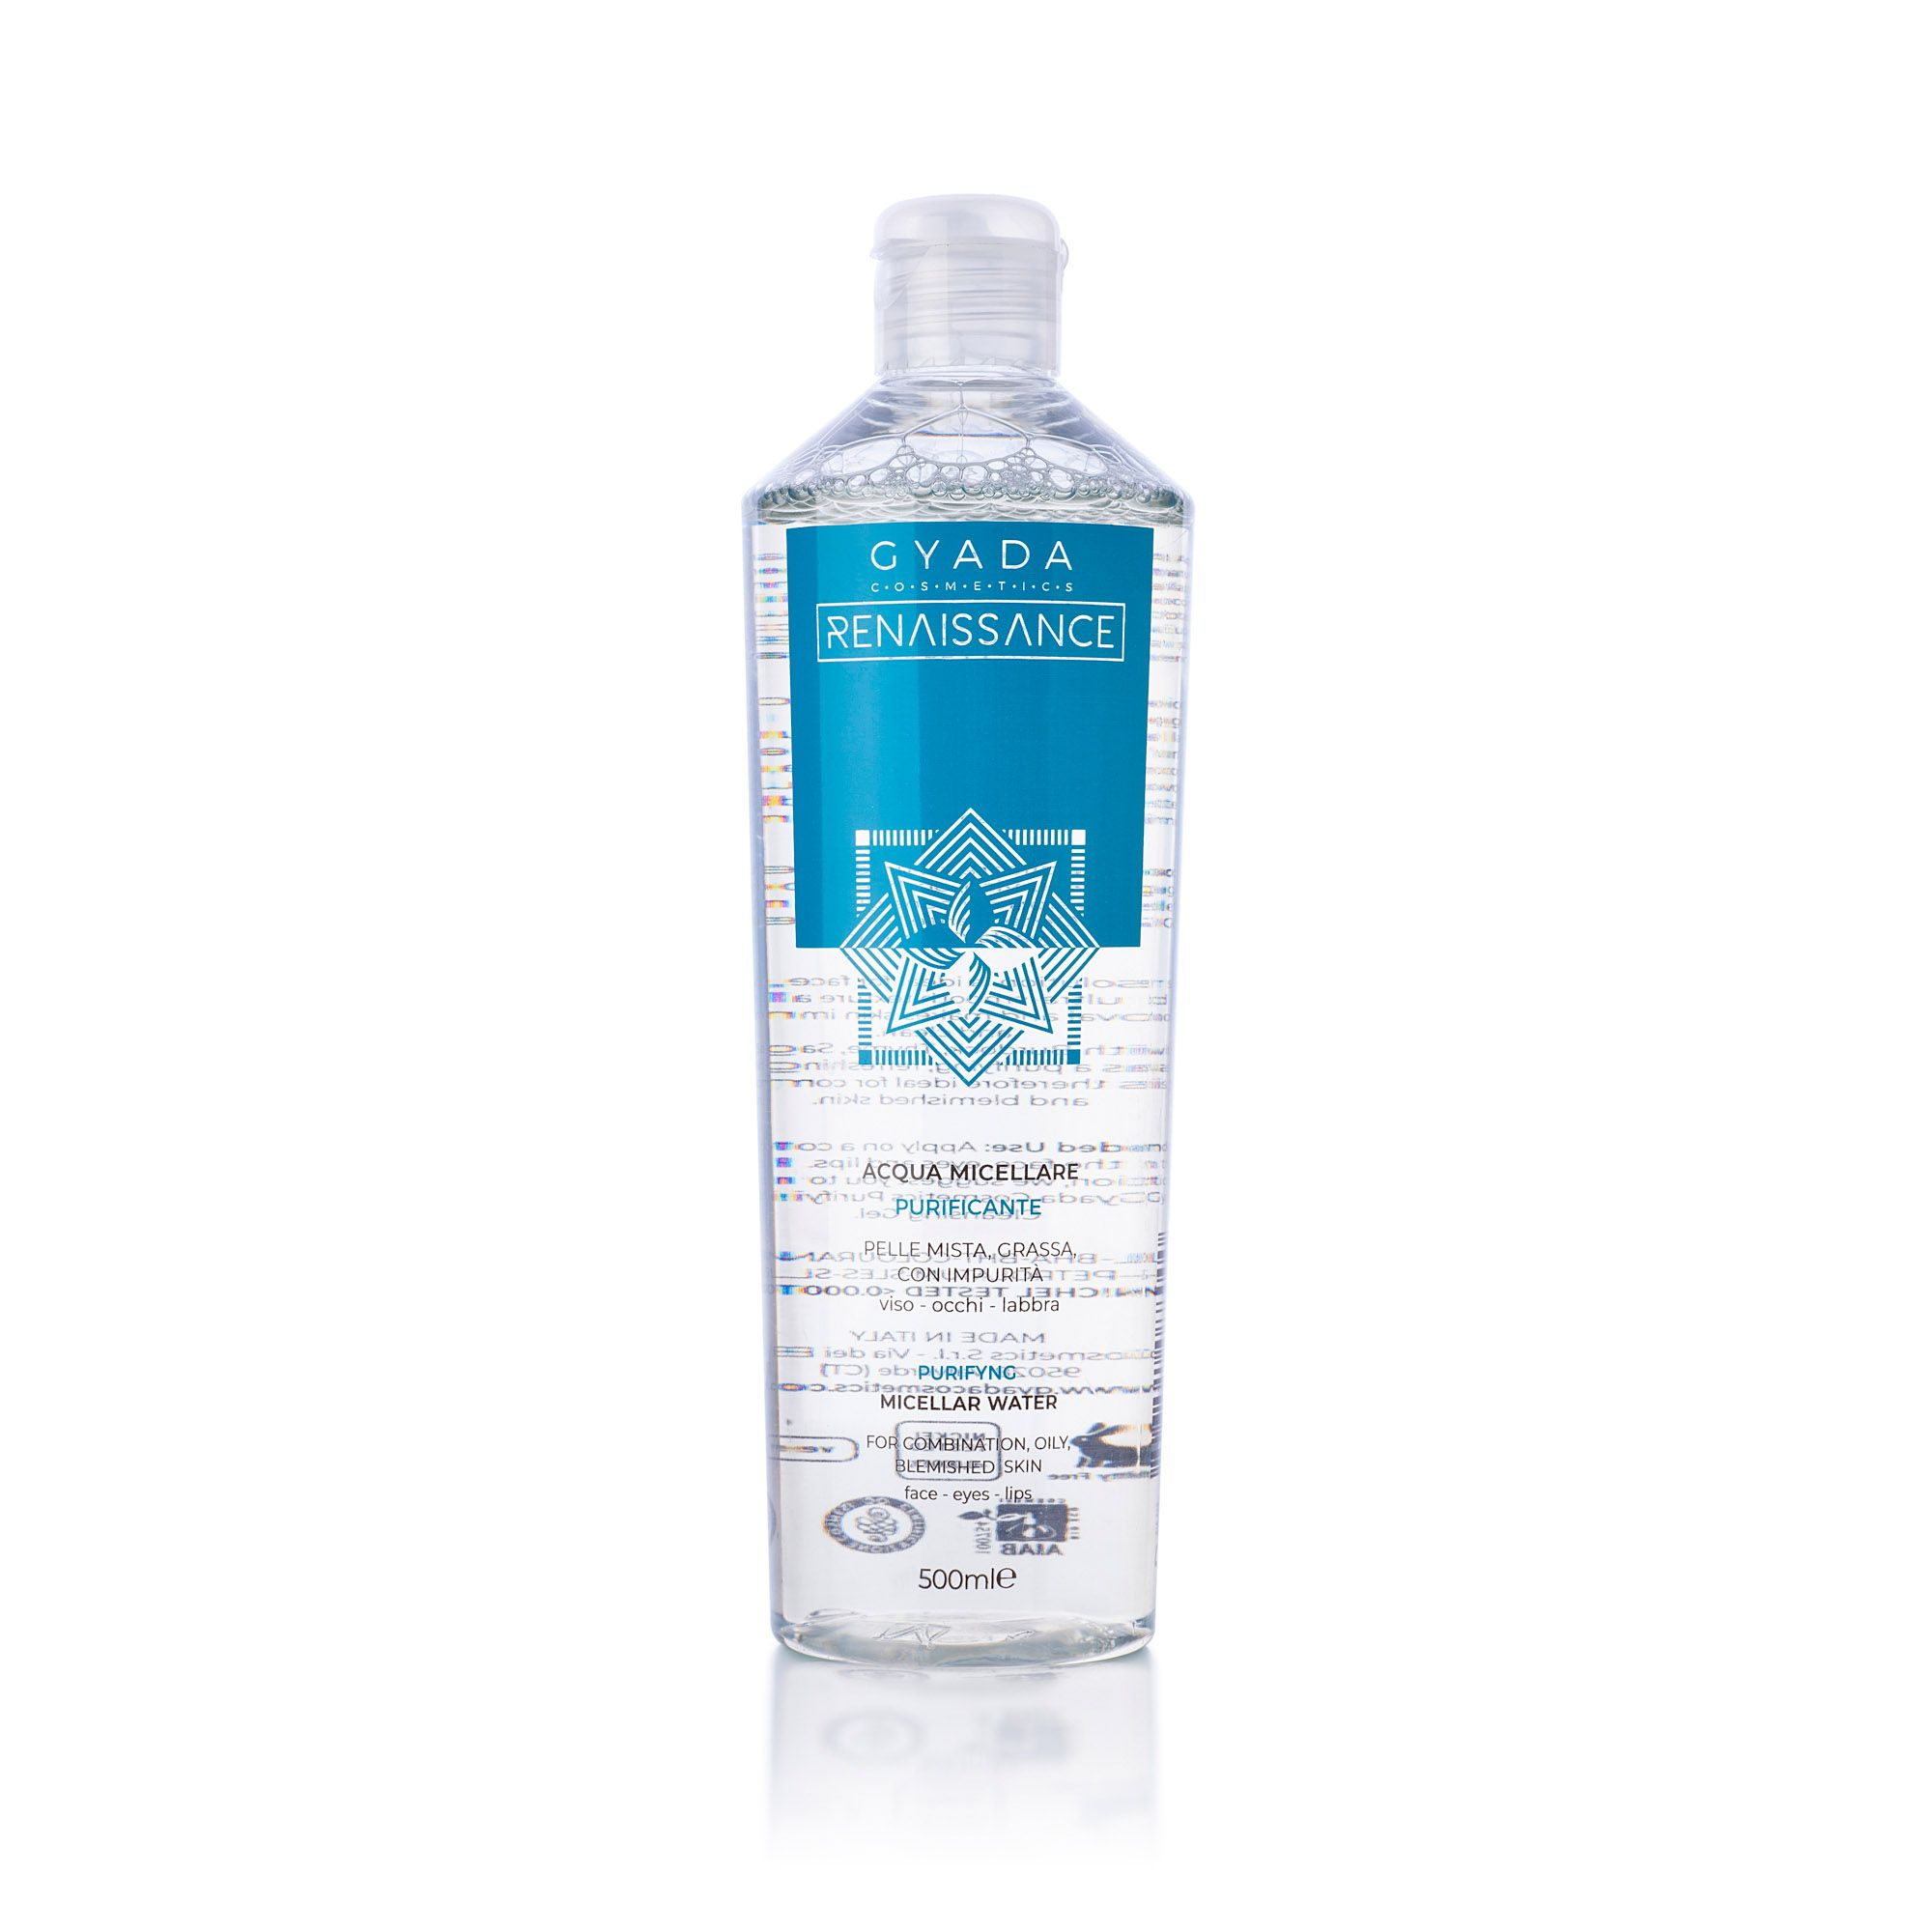 GYADA COSMETICS Acqua Micellare Purificante 500ml